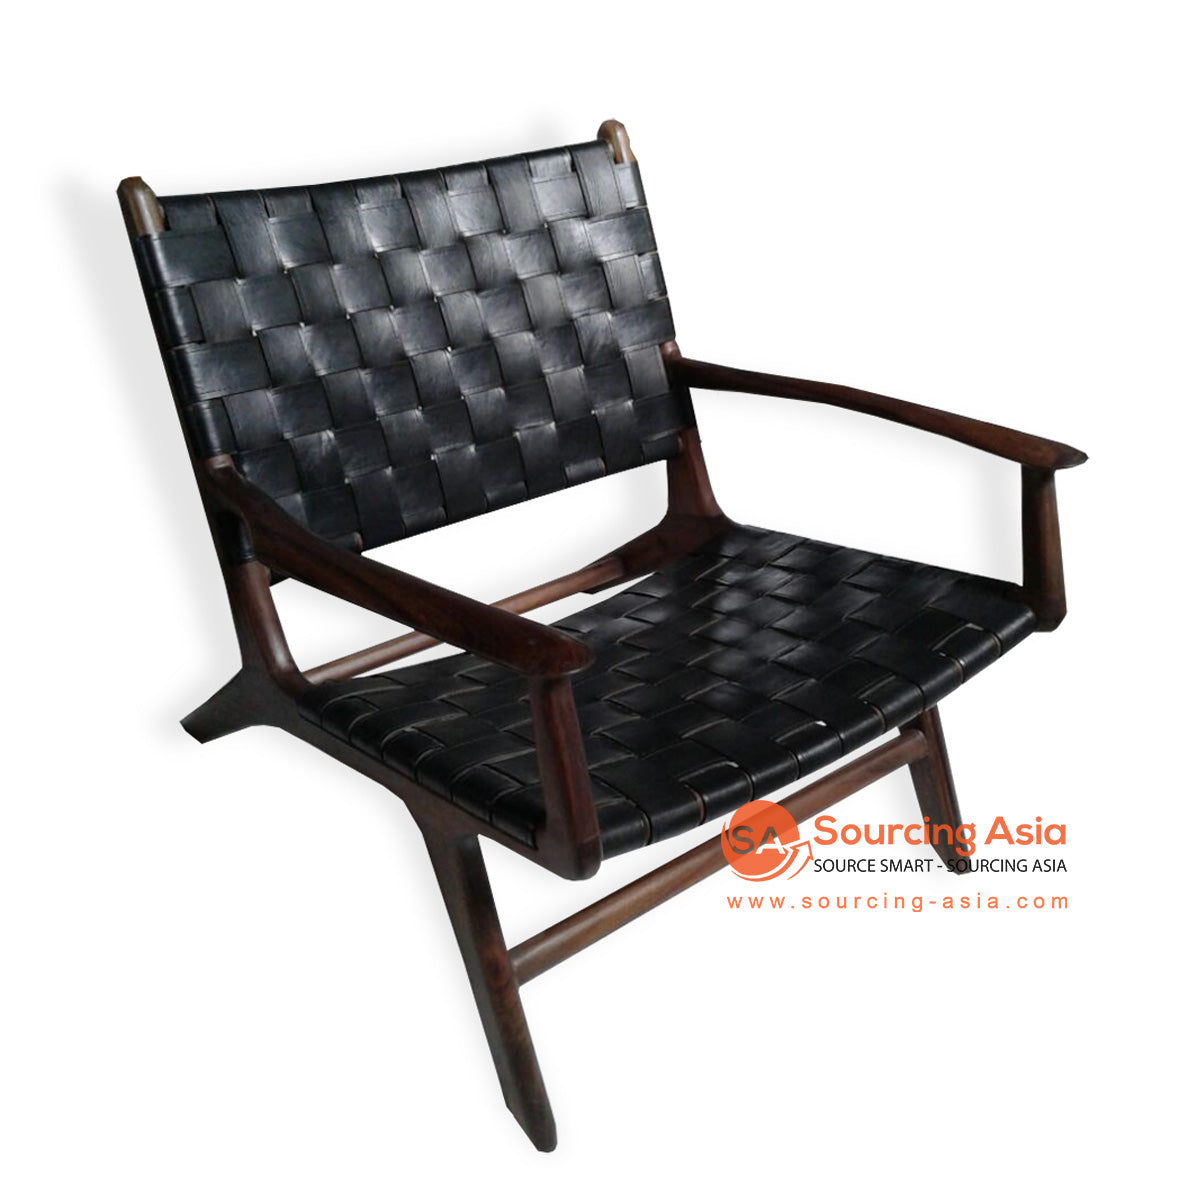 KUSJ002-C2 WOVEN LEATHER LAZY CHAIR WITH ARMS